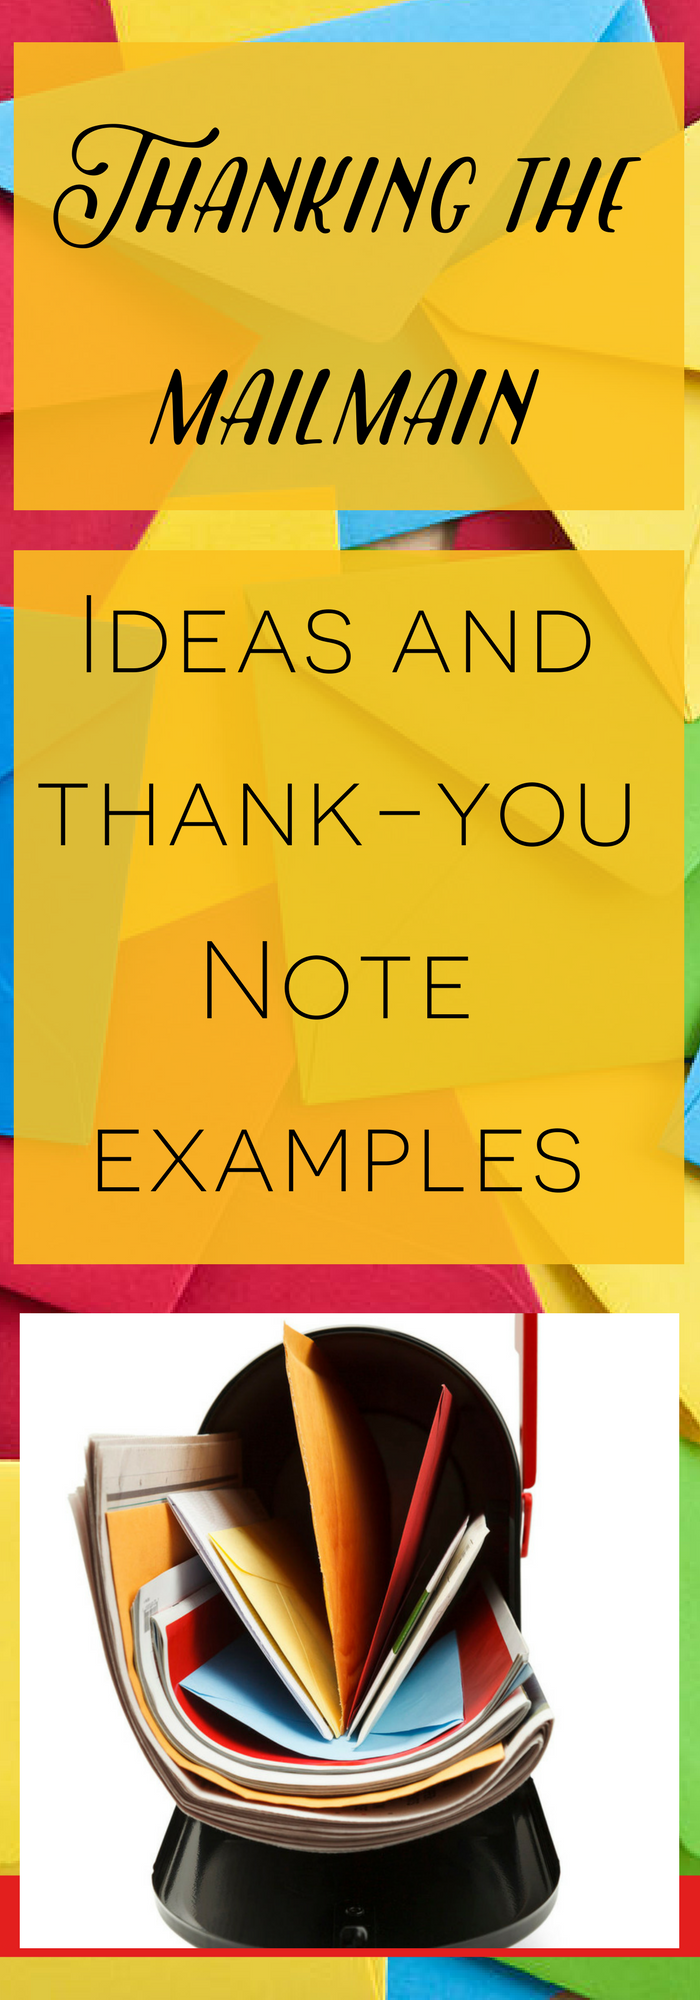 Thanking The Mailman Ideas And Thank You Note Examples Thank You Notes Thank You Gifts Thank You Messages